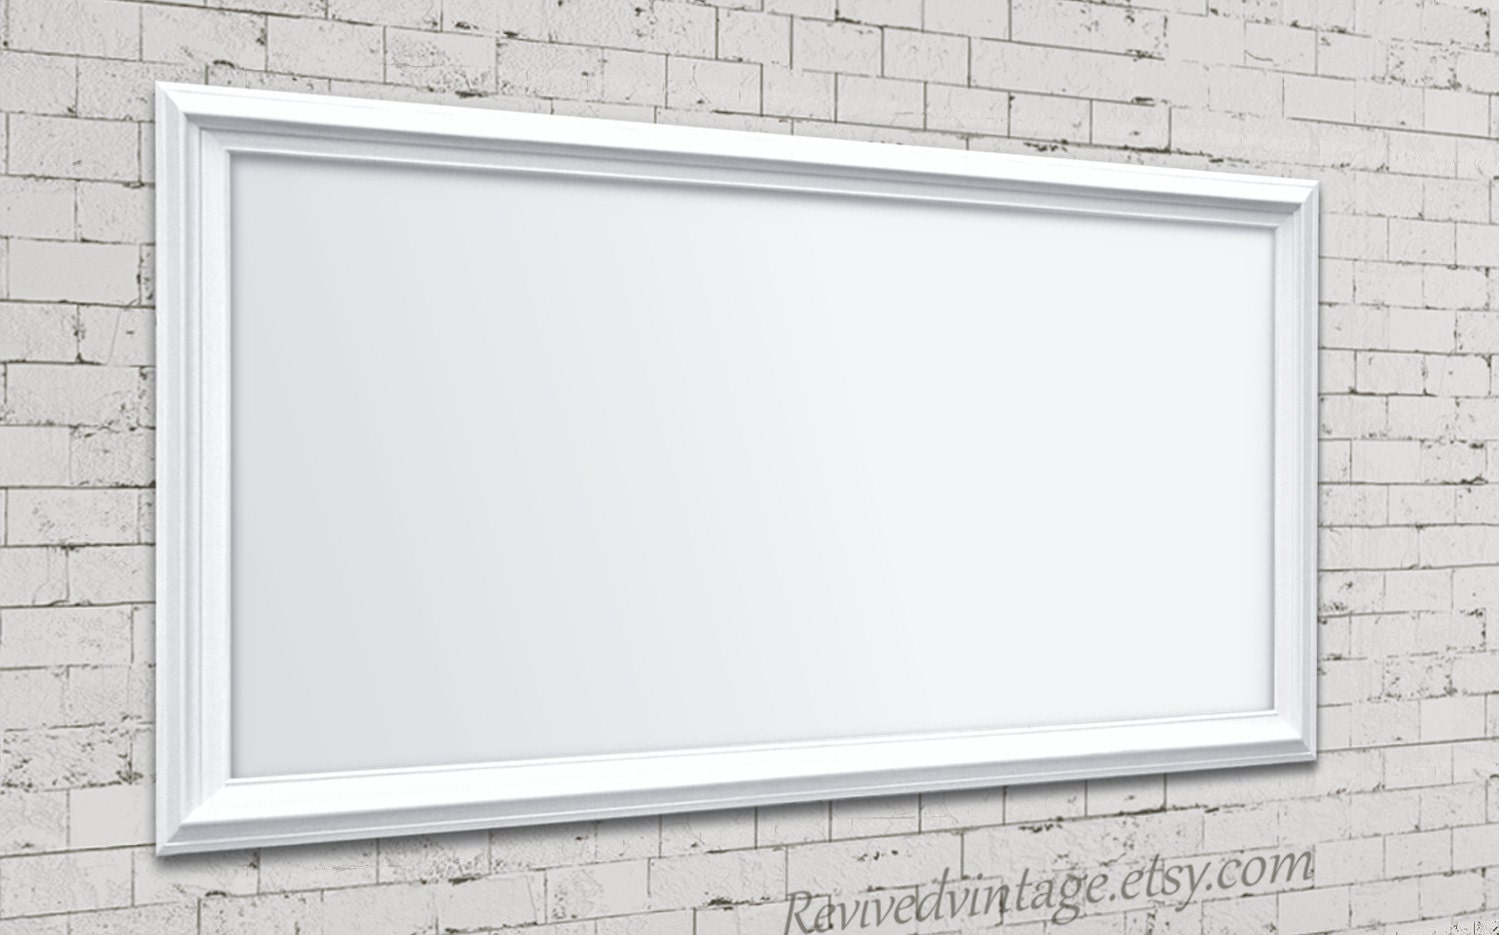 Large Modern Magnetic Boards For Sale 53x29 By Revivedvintage